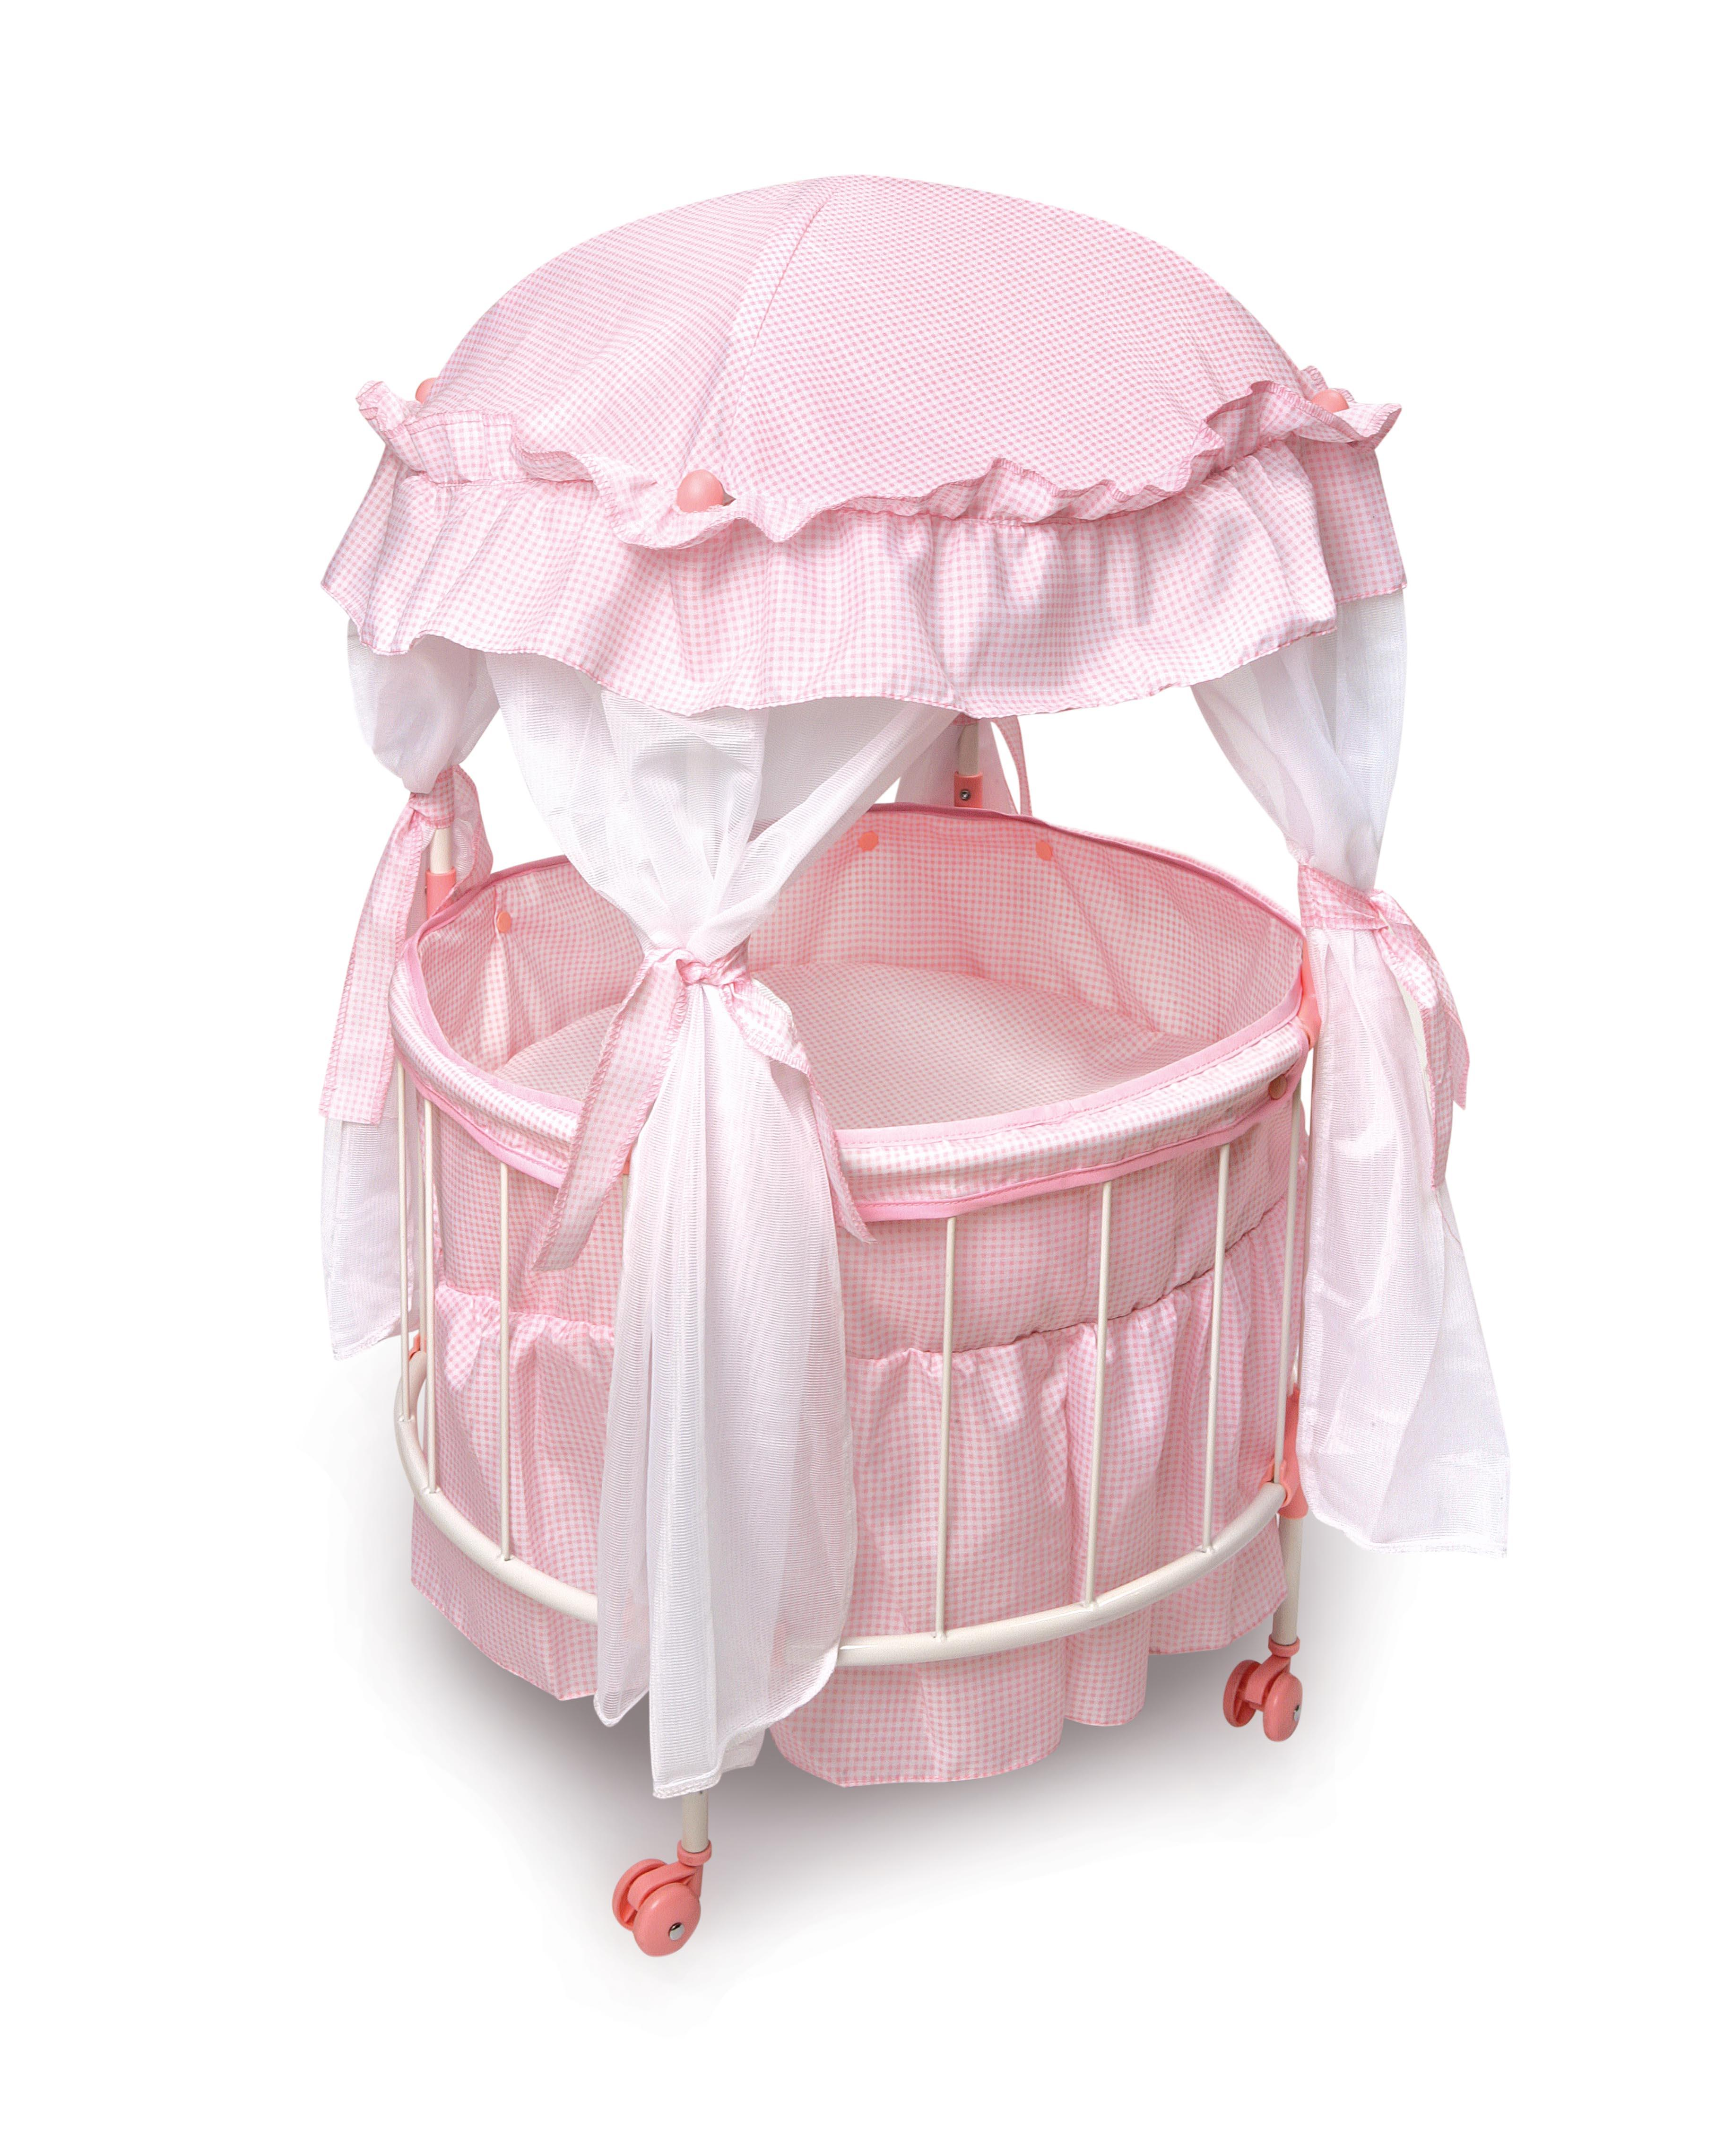 Royal Pavilion Round Doll Crib With Canoby And Bedding